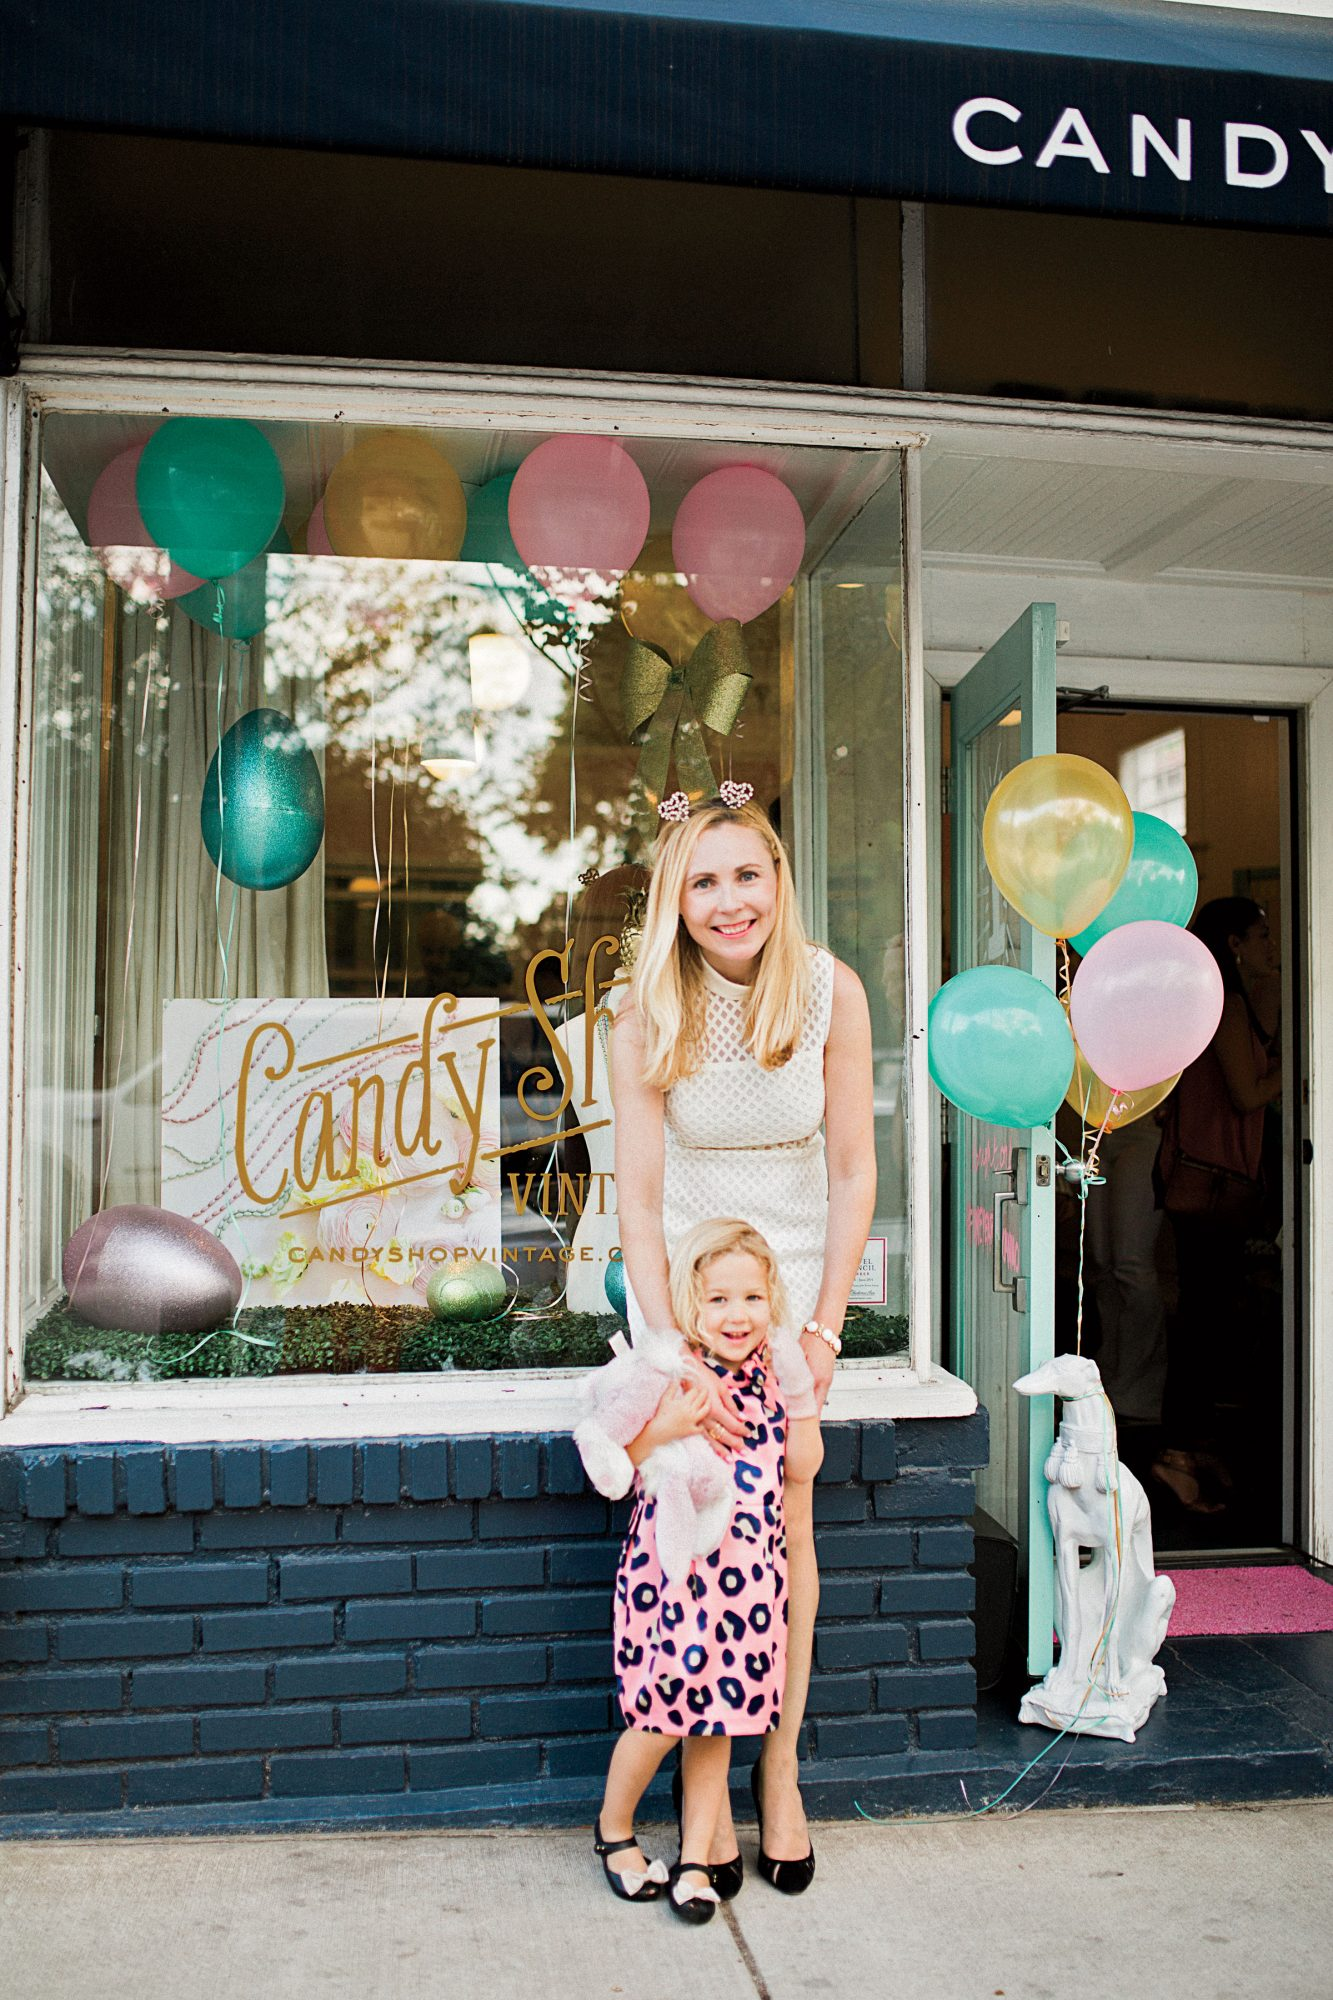 Deirdre Hogan Zahl's Owner of Candy Shop Vintage in Charleston, SC